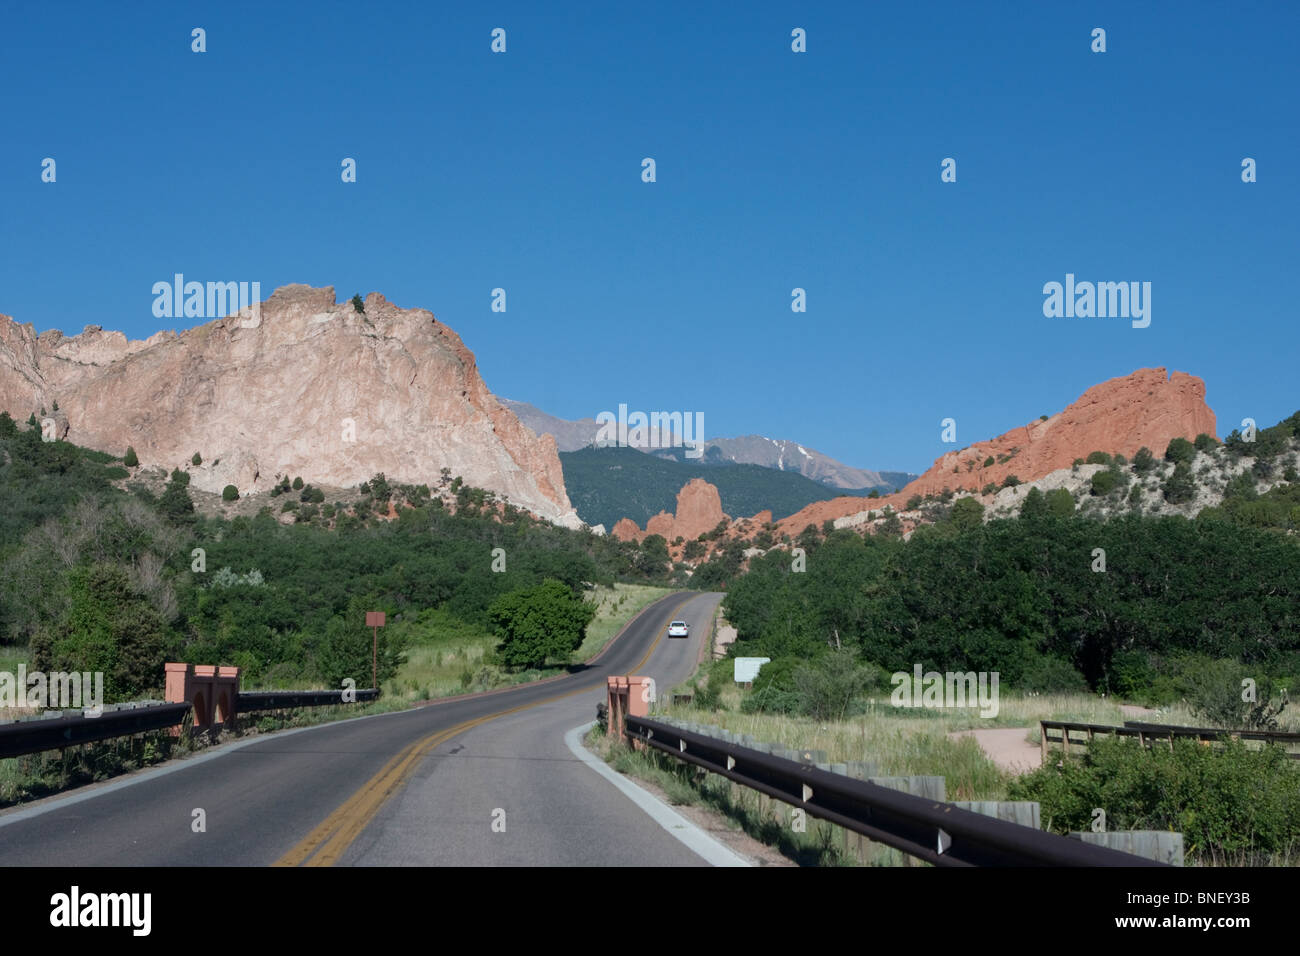 Garden of the Gods Colorado Red Rock formations road - Stock Image